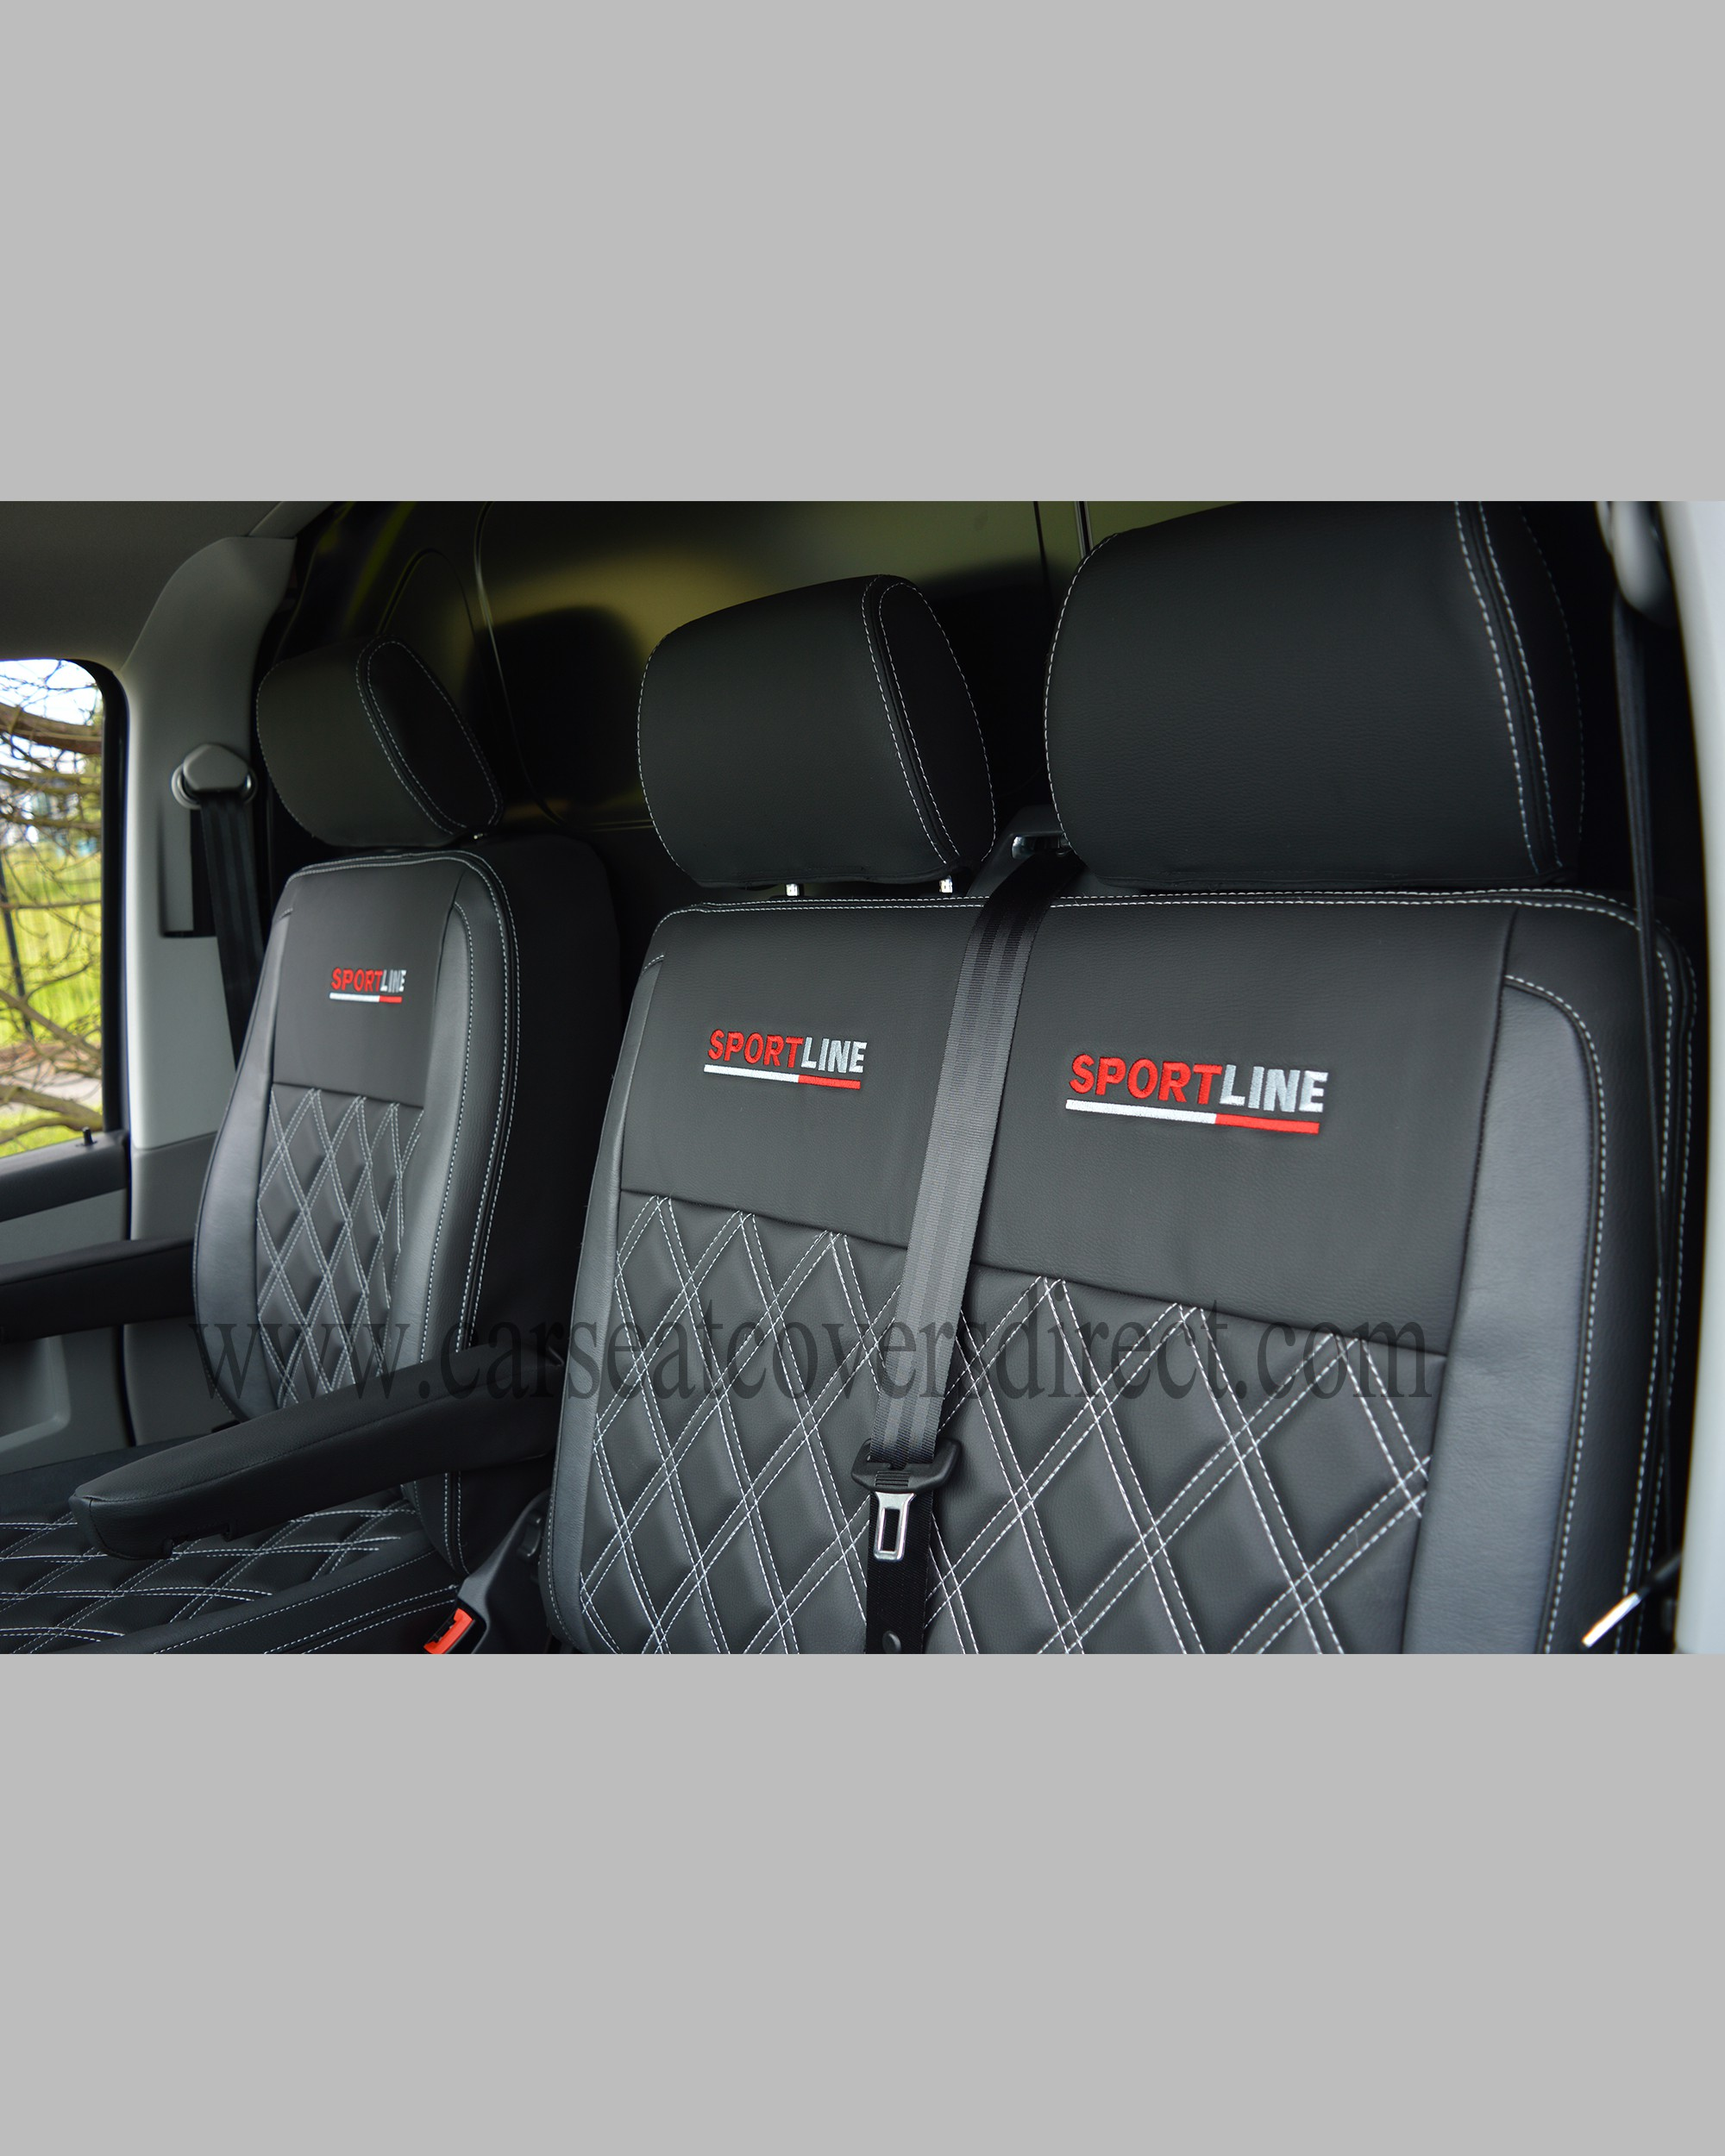 Vw Transporter T5 Seat Covers Black Amp Pewter Grey W Logos